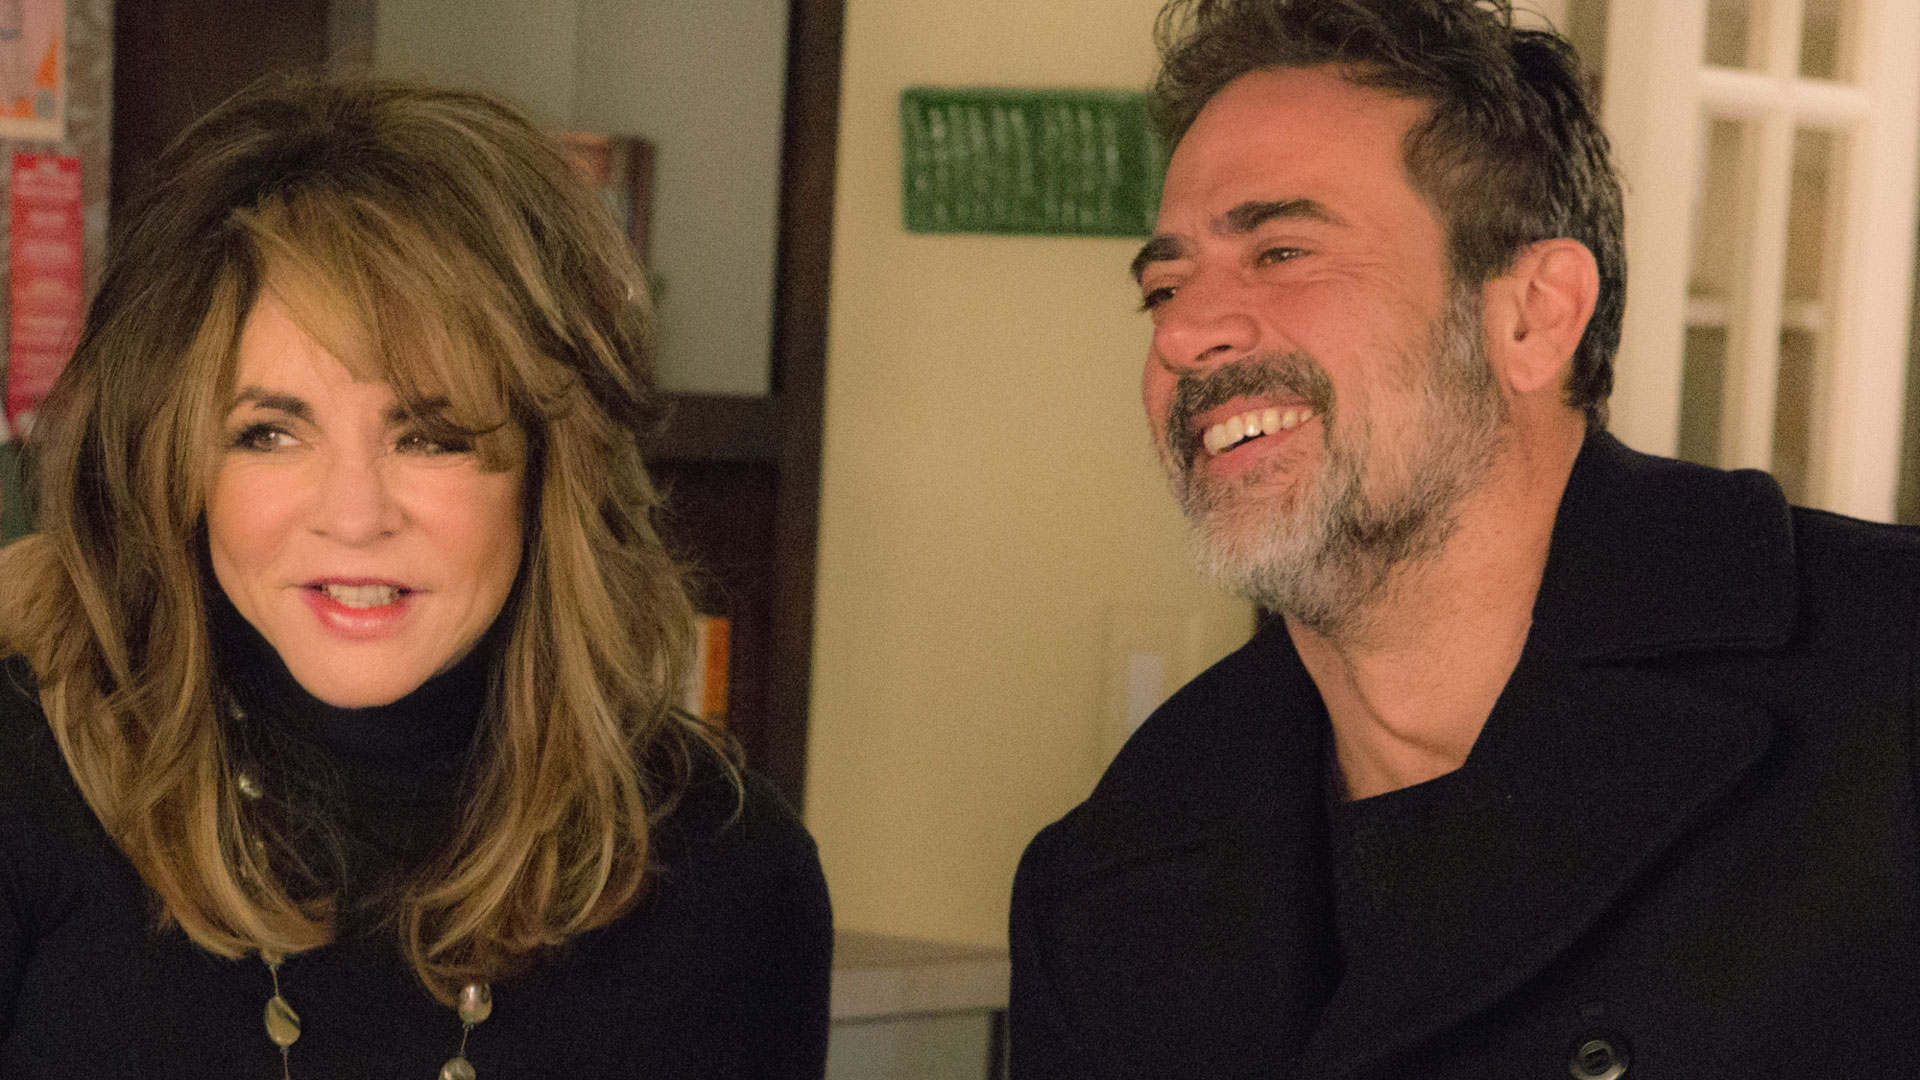 Stockard Channing as Veronica Loy and Jeffrey Dean Morgan as Jason Crouse